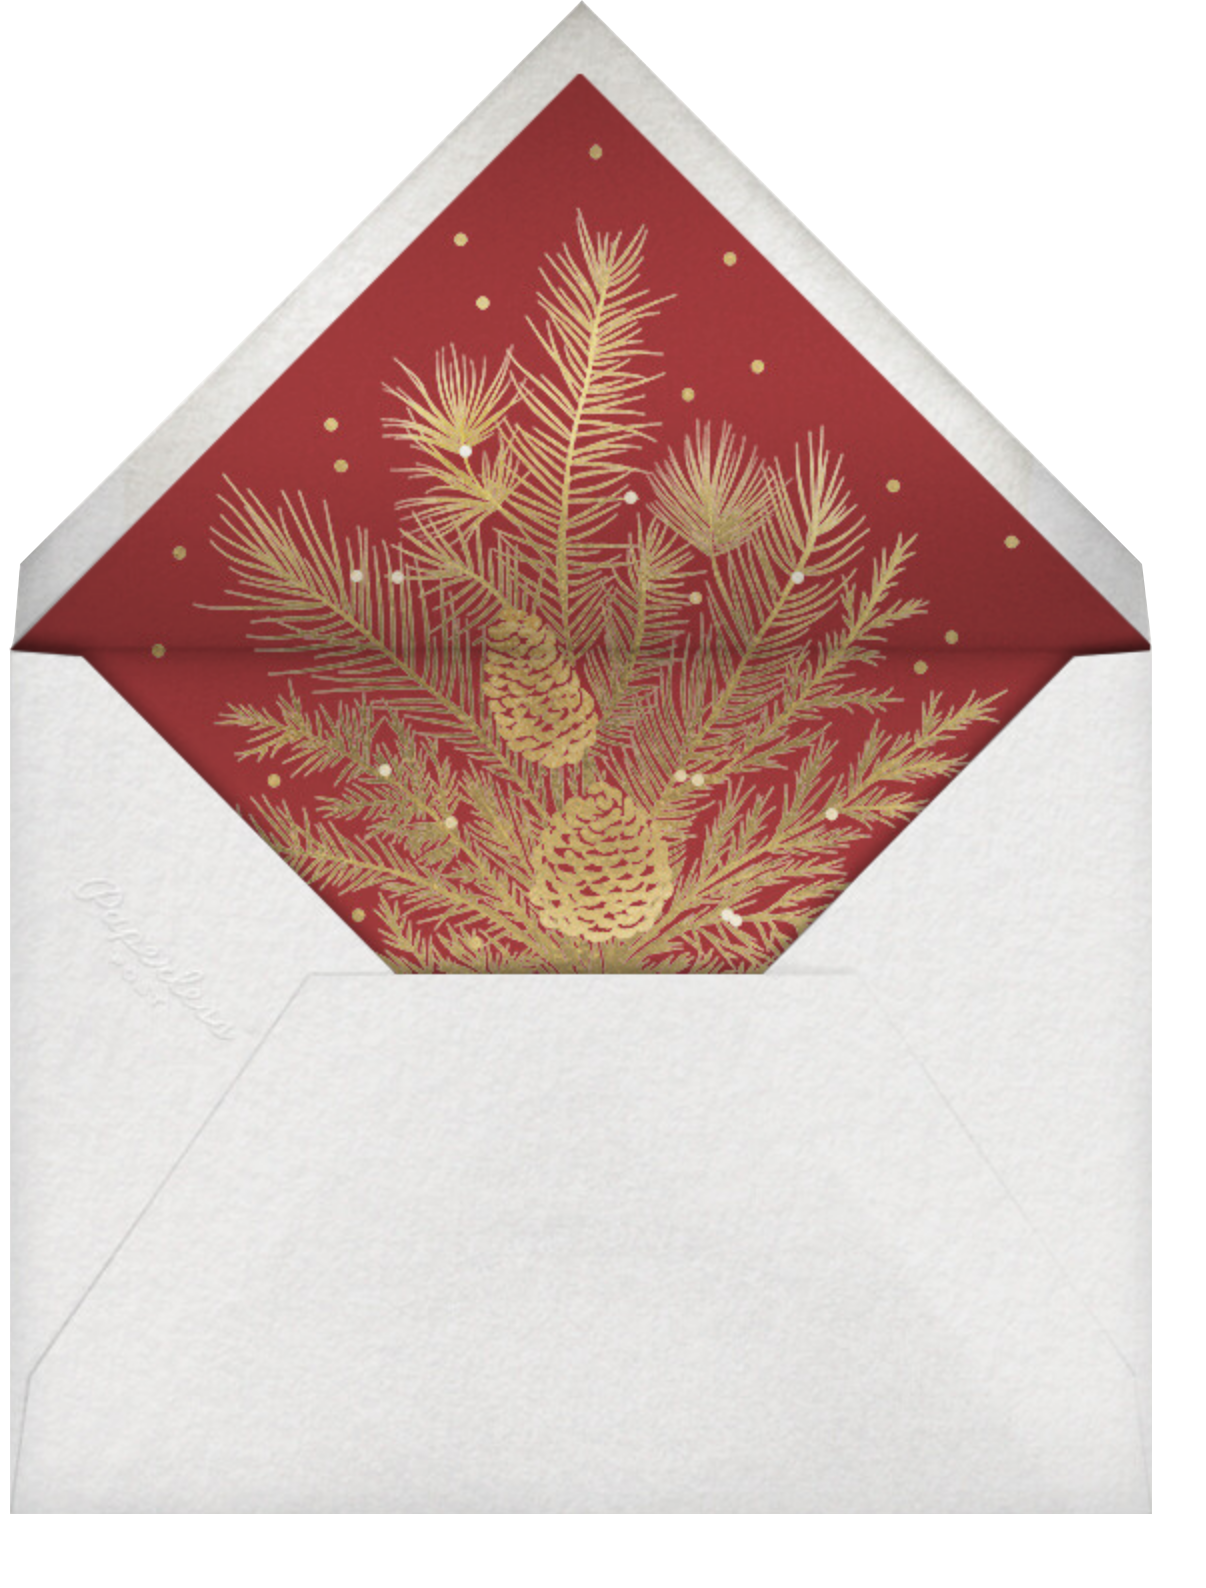 Yule-tied - Paperless Post - Holiday cards - envelope back